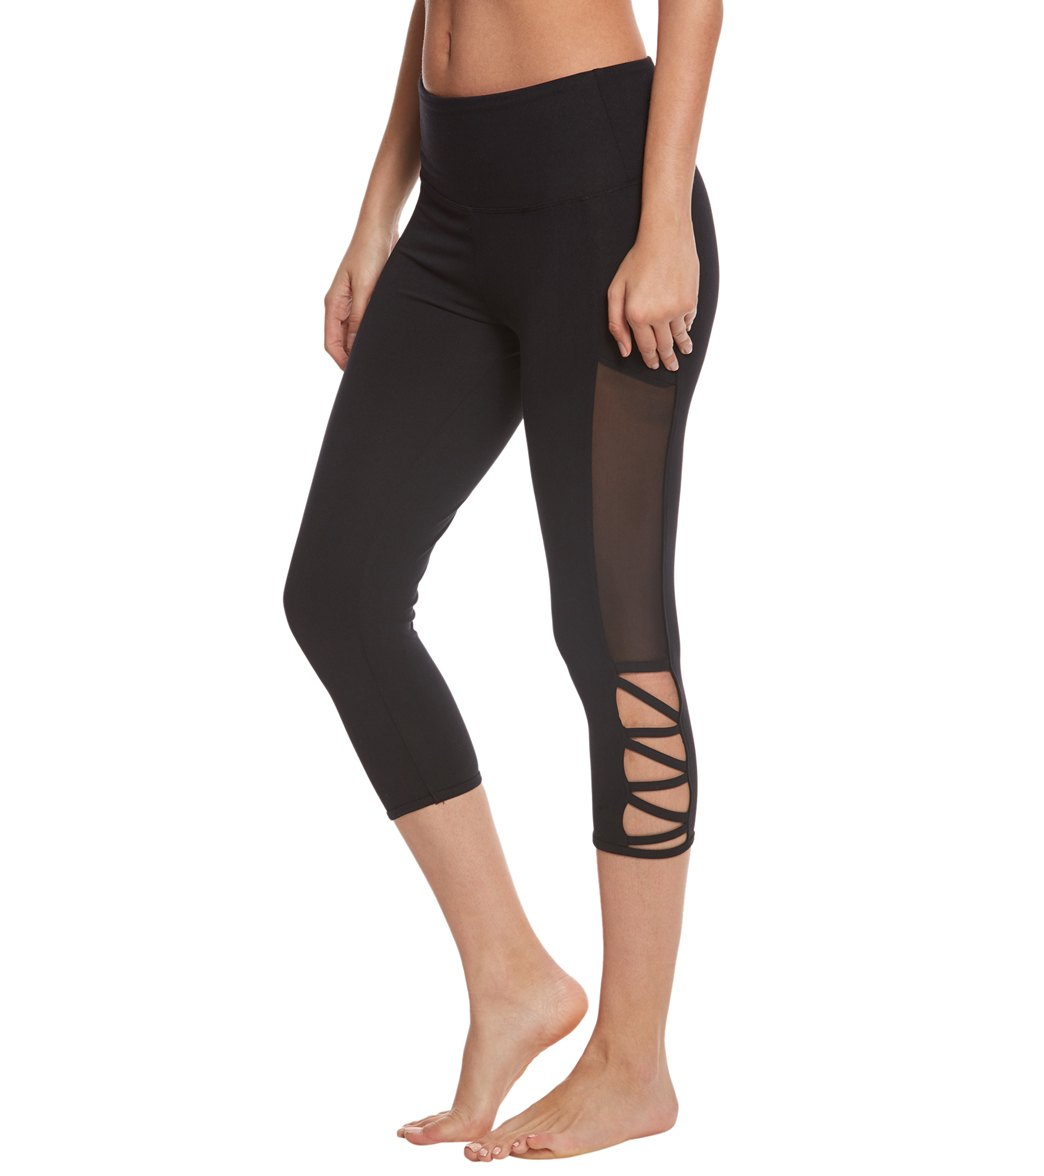 Mesh Yoga Clothes at YogaOutlet.com